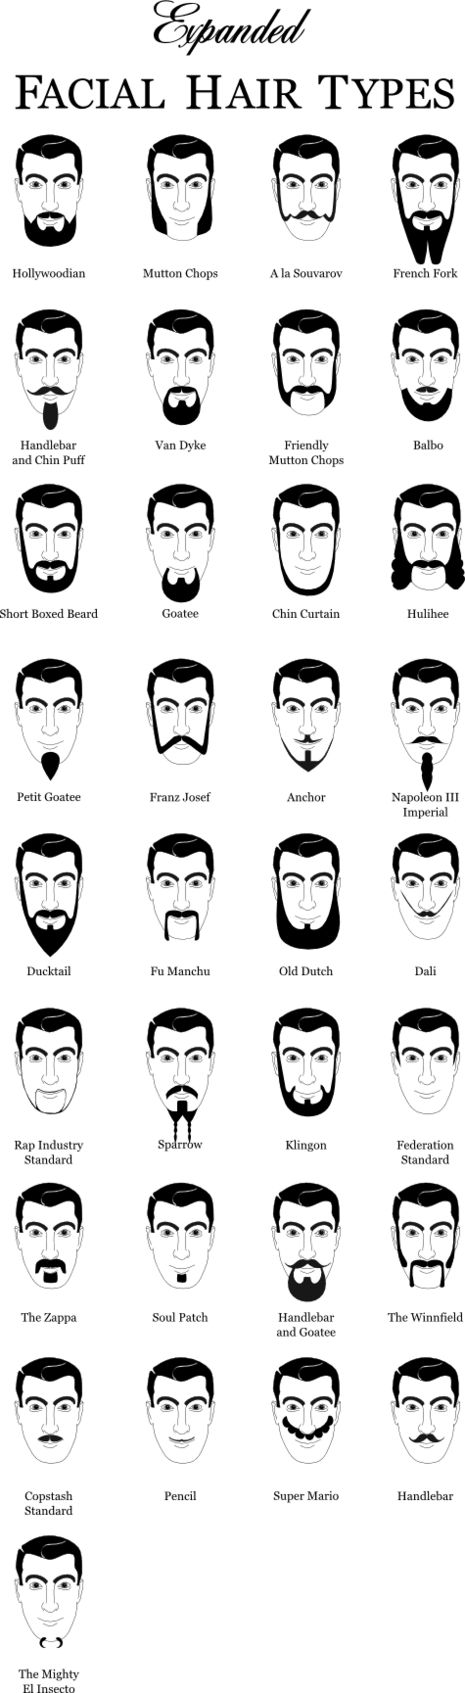 Outstanding 1000 Ideas About Facial Hair Styles On Pinterest Beard Styles Short Hairstyles For Black Women Fulllsitofus